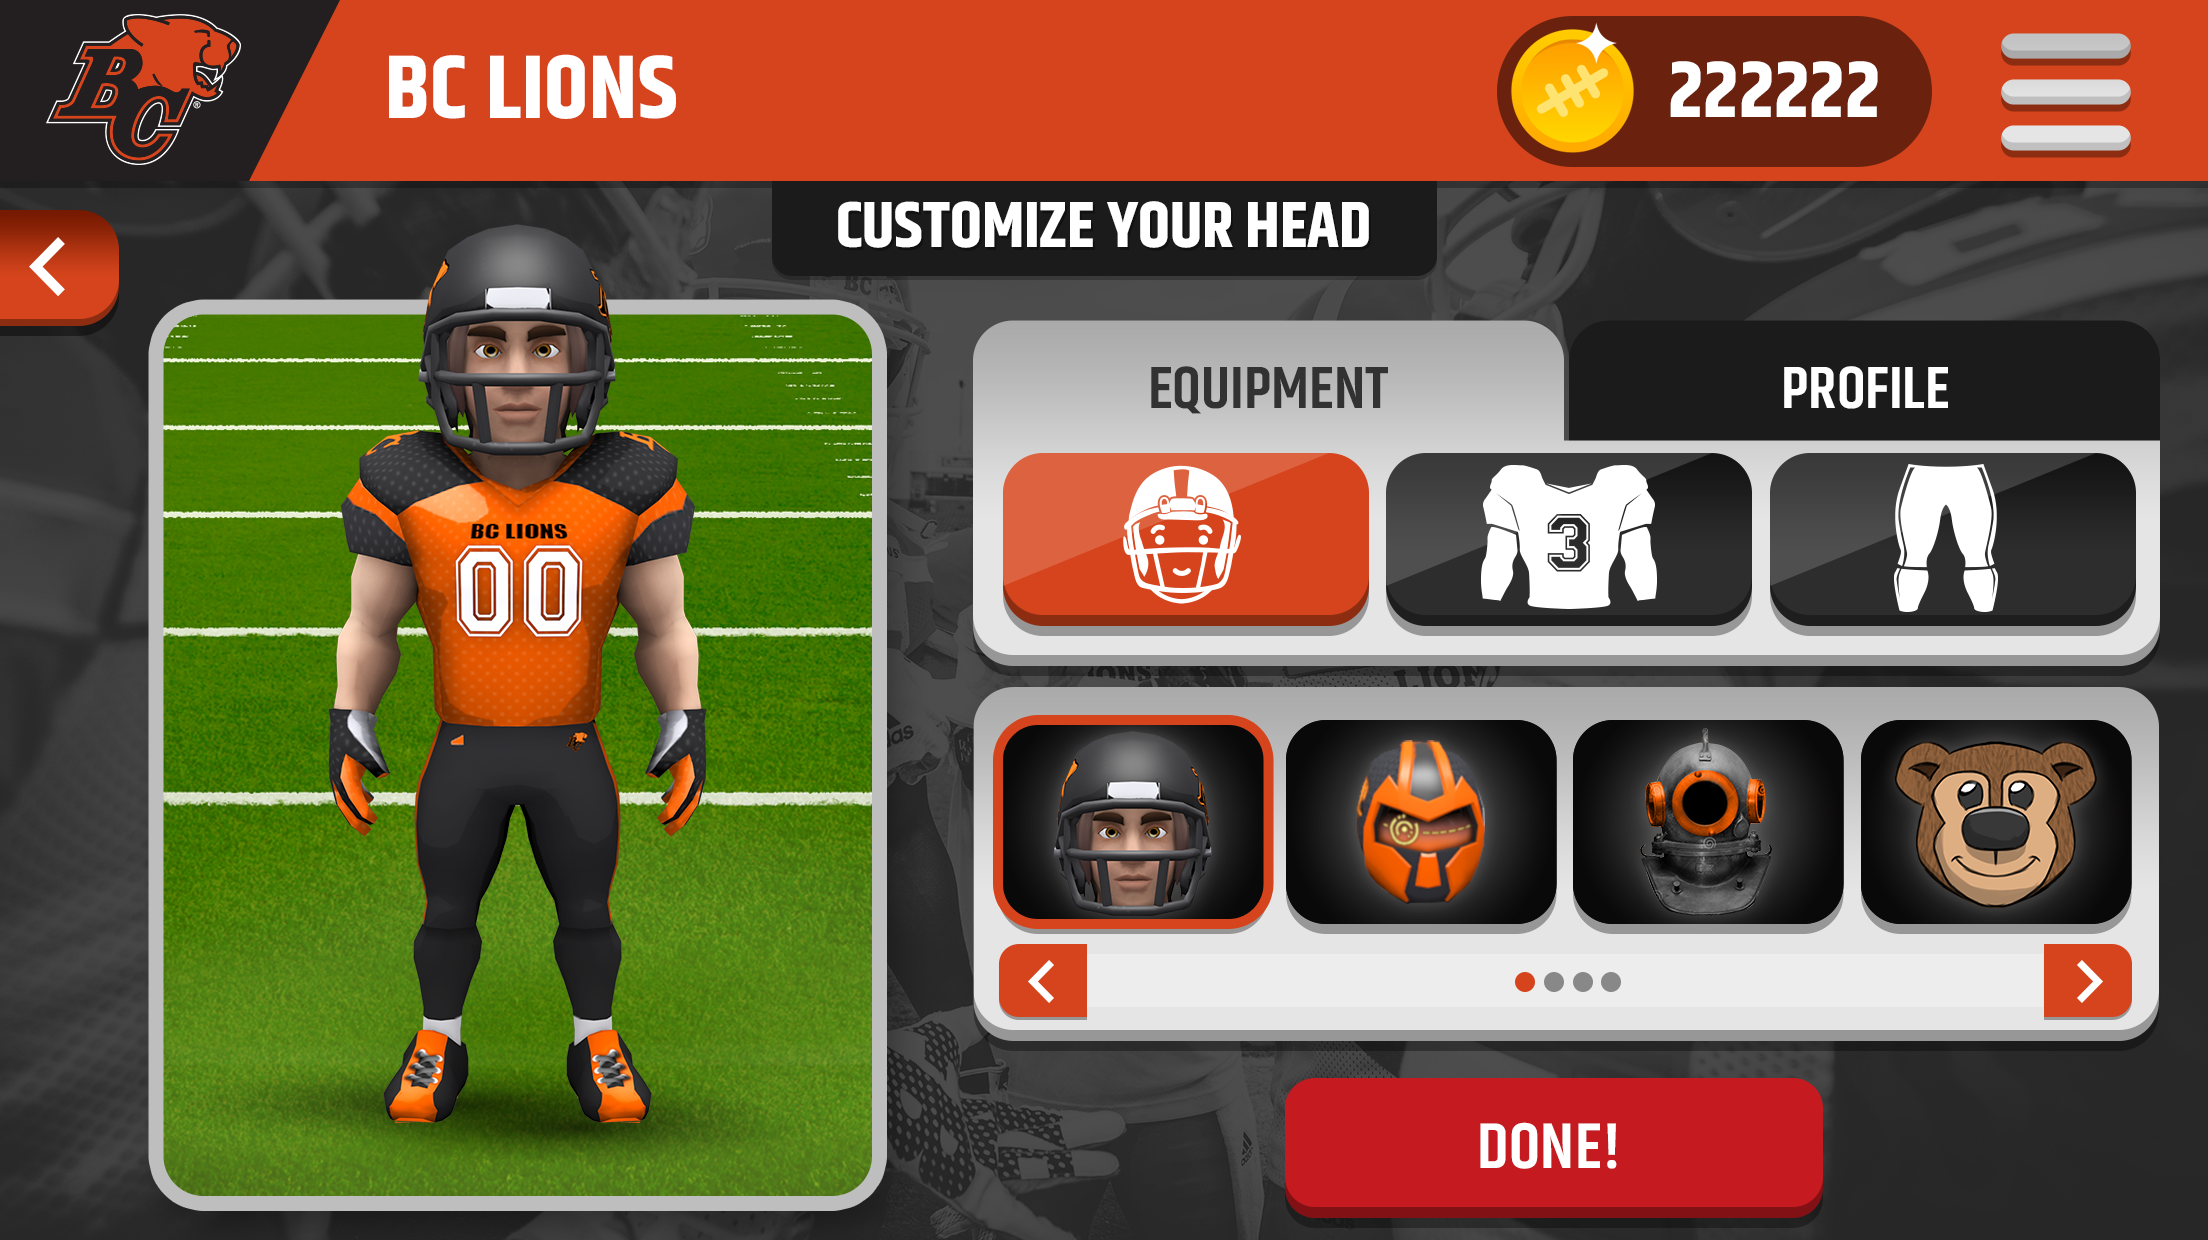 08 1_bcLions_head.png